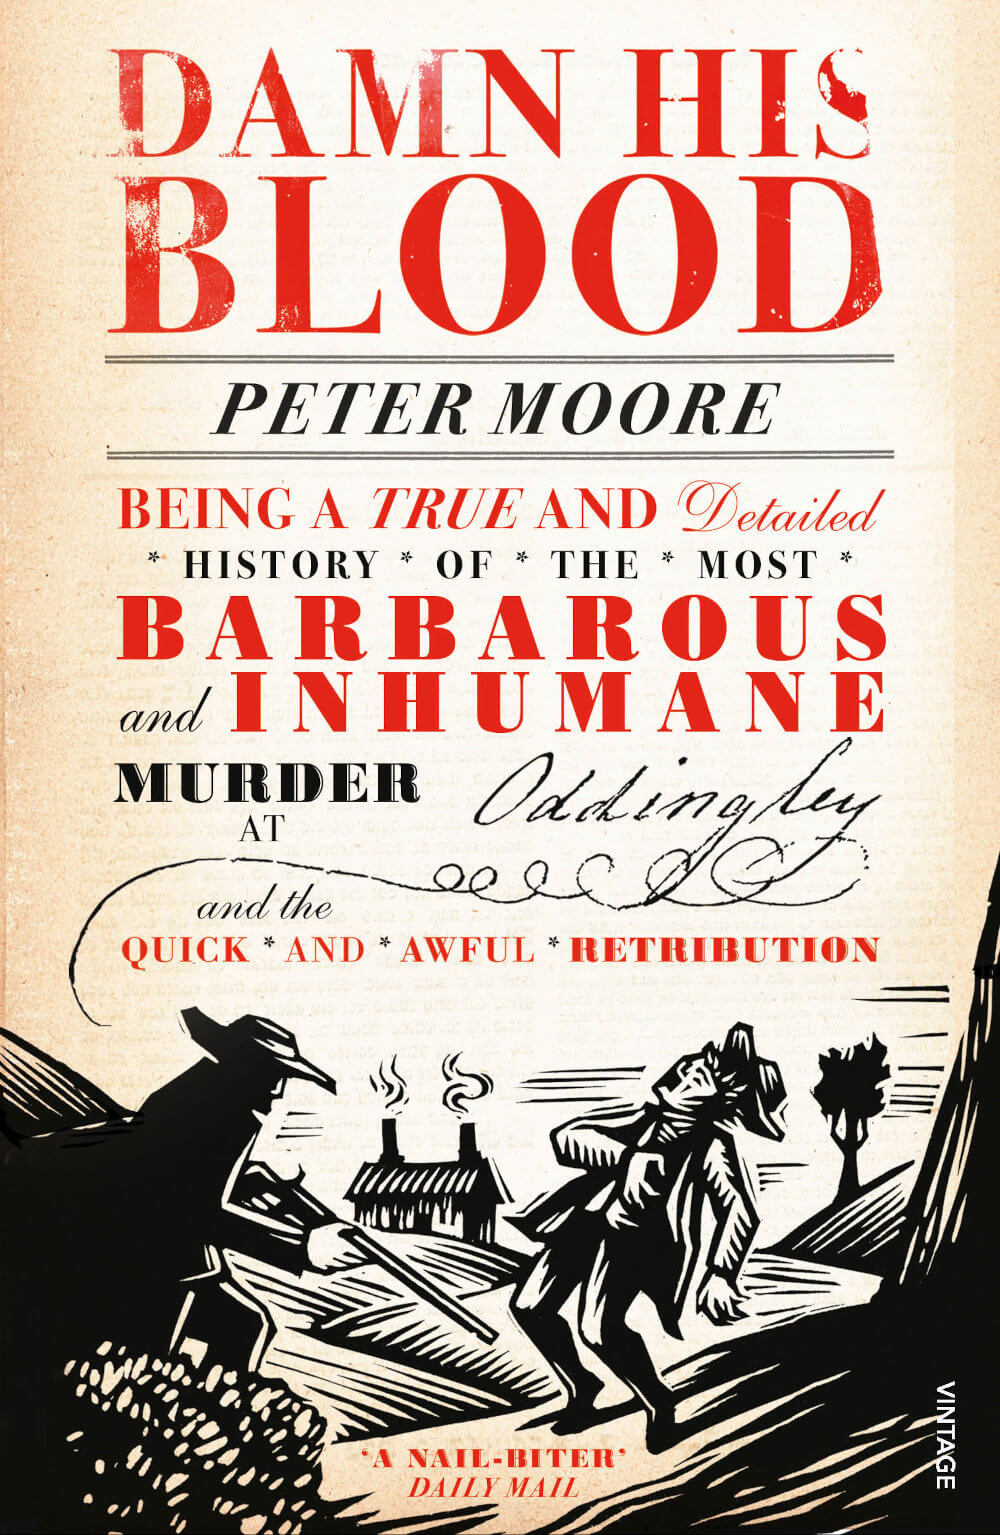 Damn His Blood: Being a True and Detailed History of the Most Barbarous and Inhumane Murder at Oddingley